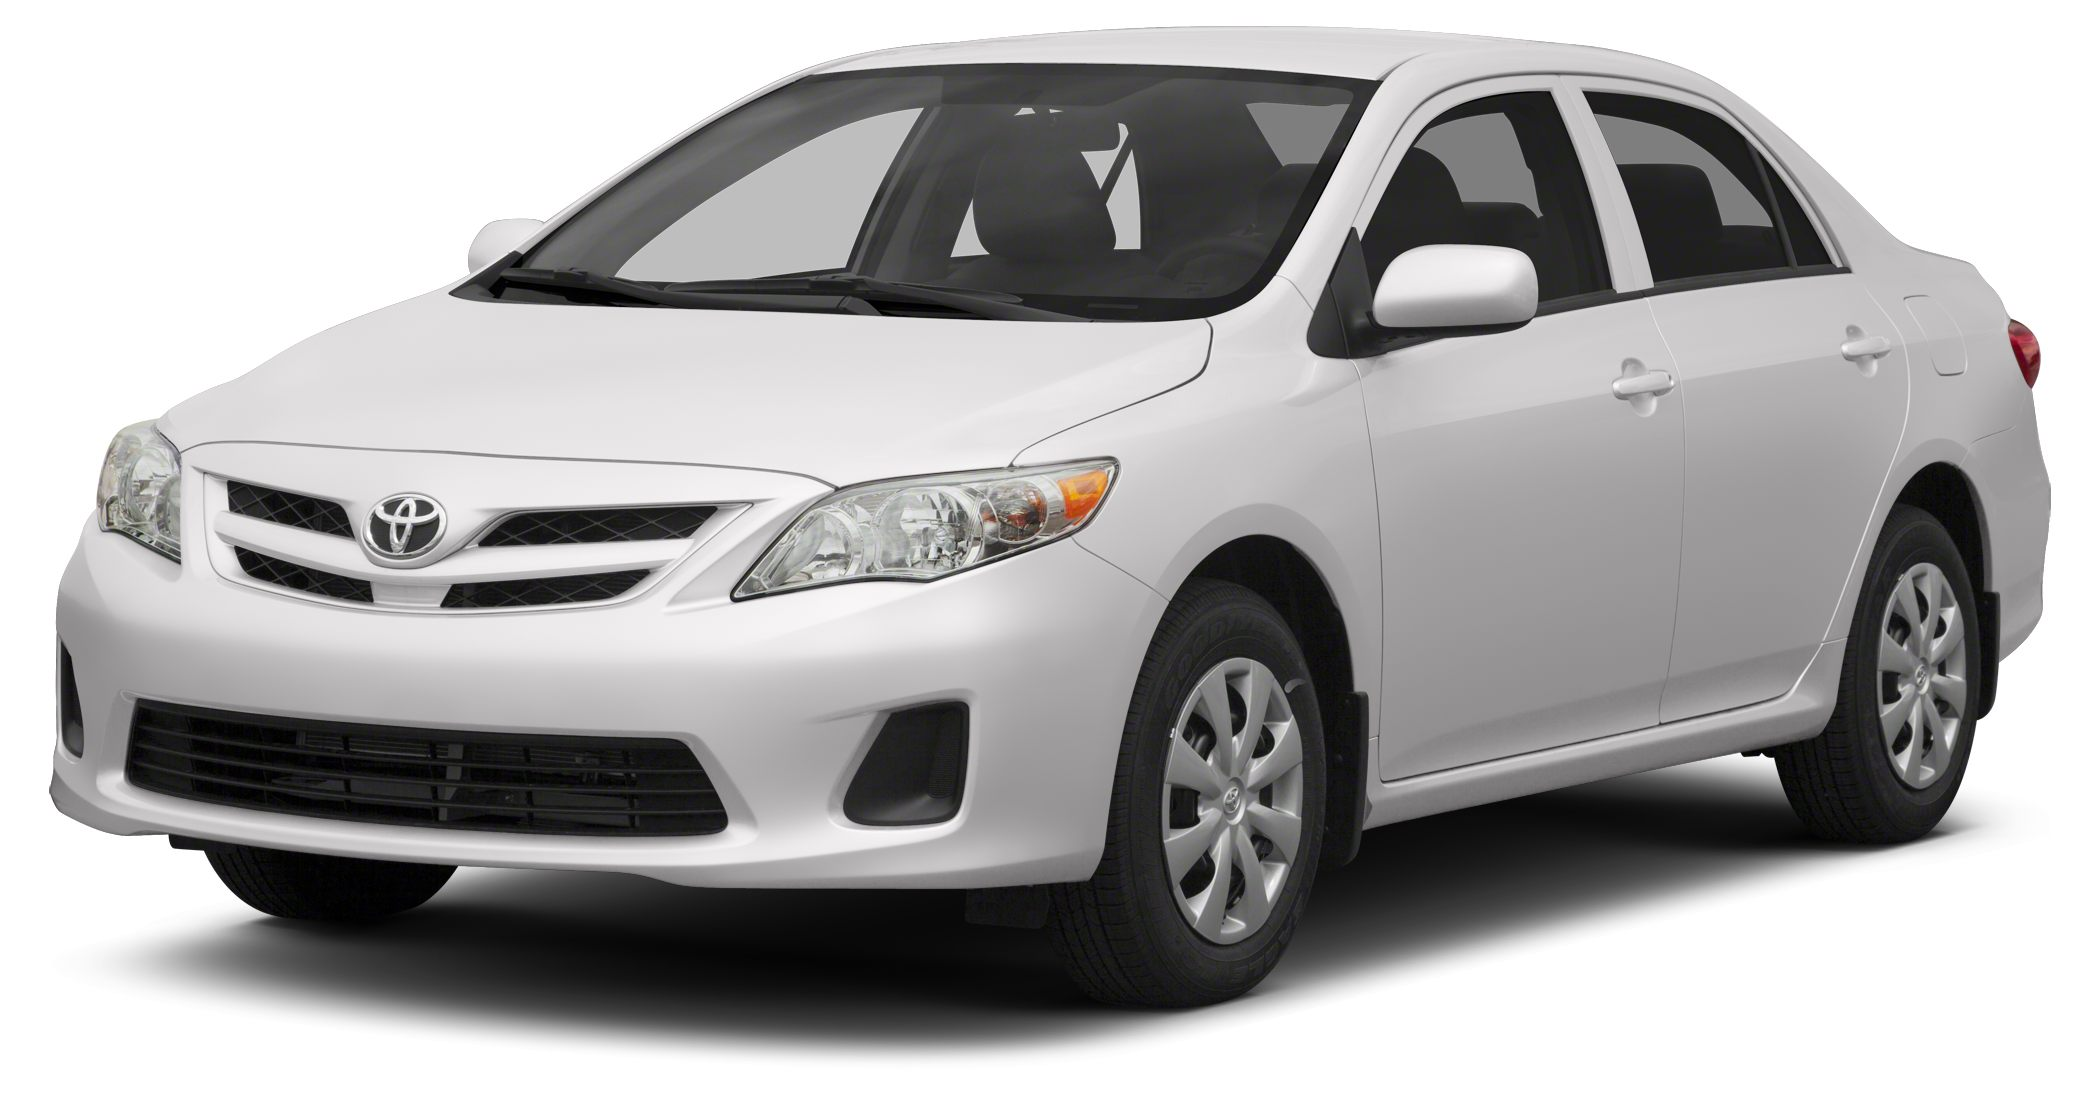 2011 Toyota Corolla LE FUEL EFFICIENT 34 MPG Hwy26 MPG City LOW MILES - 65830 SUPER WHITE exte